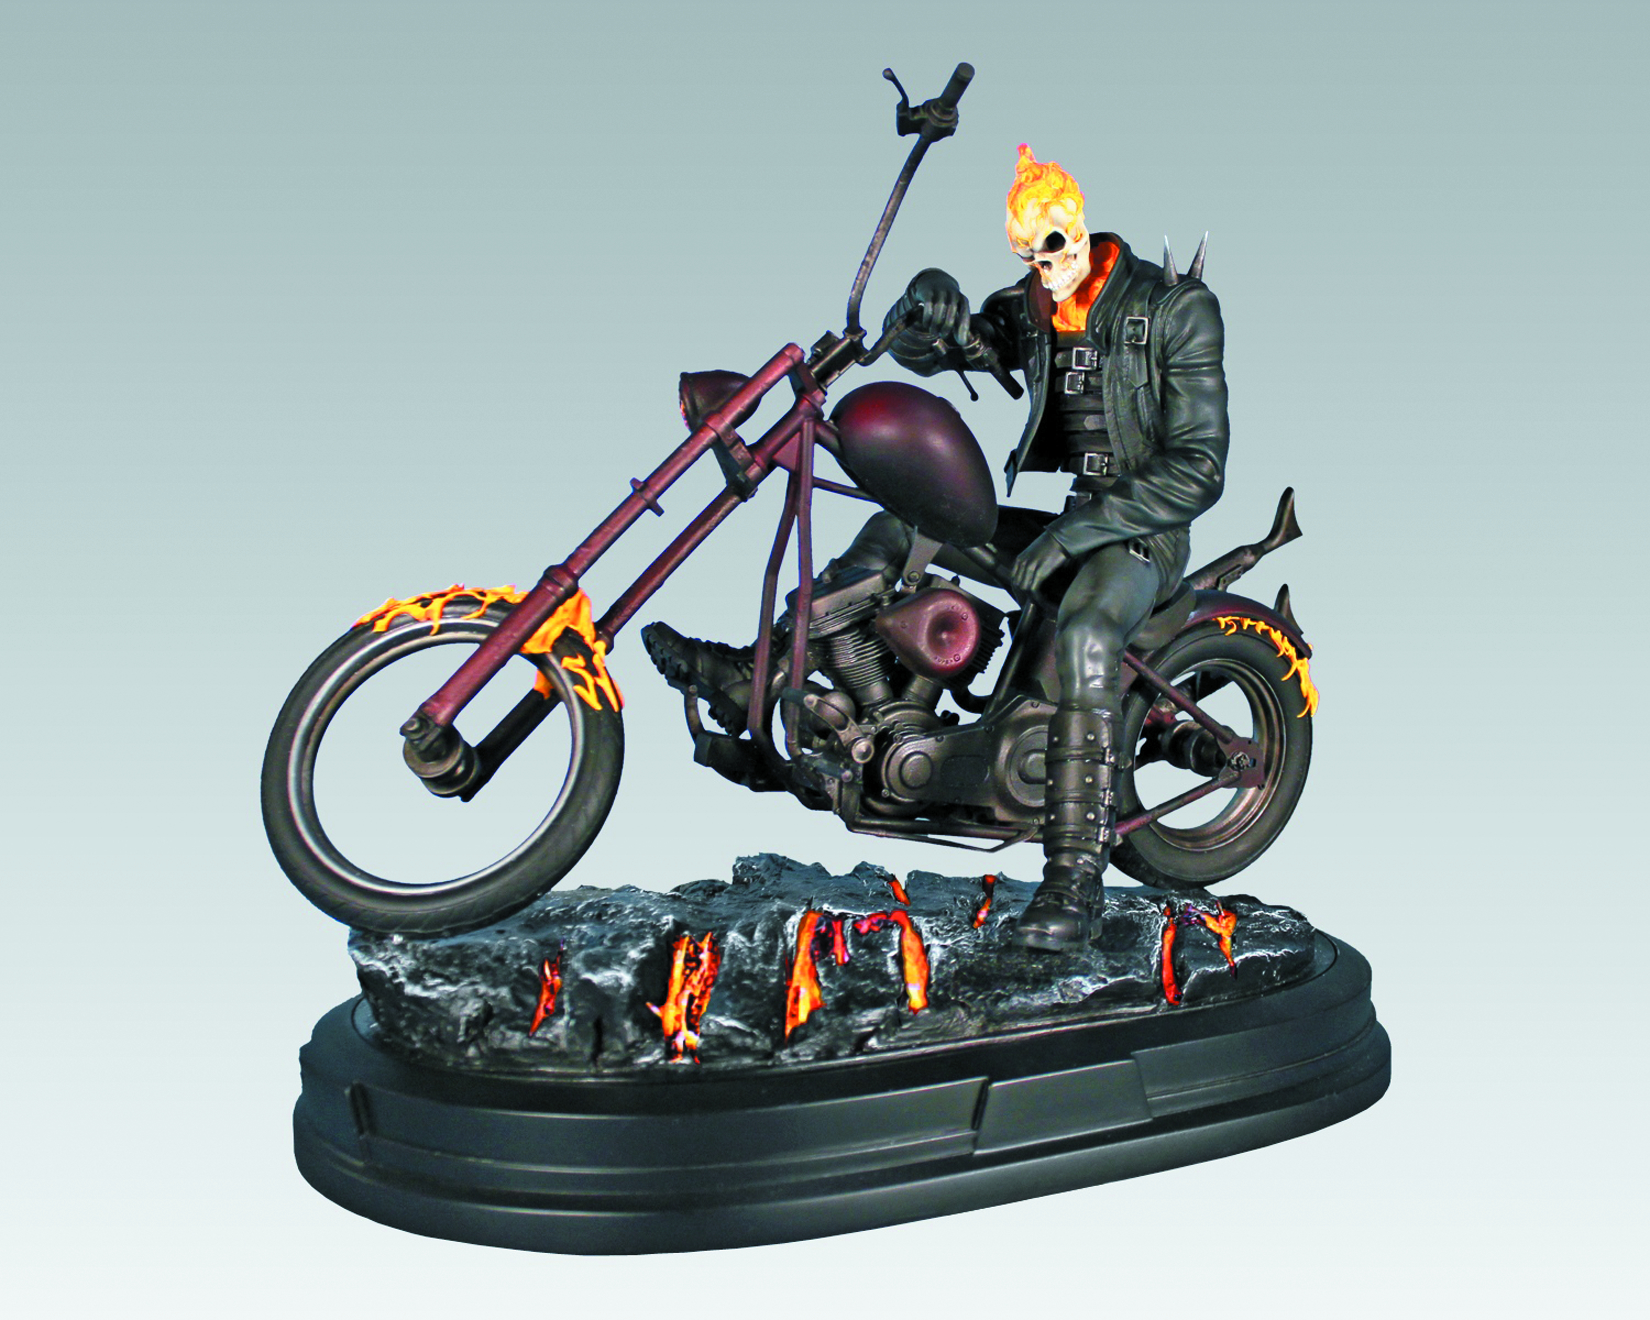 GENTLE GIANT GHOST RIDER STATUE